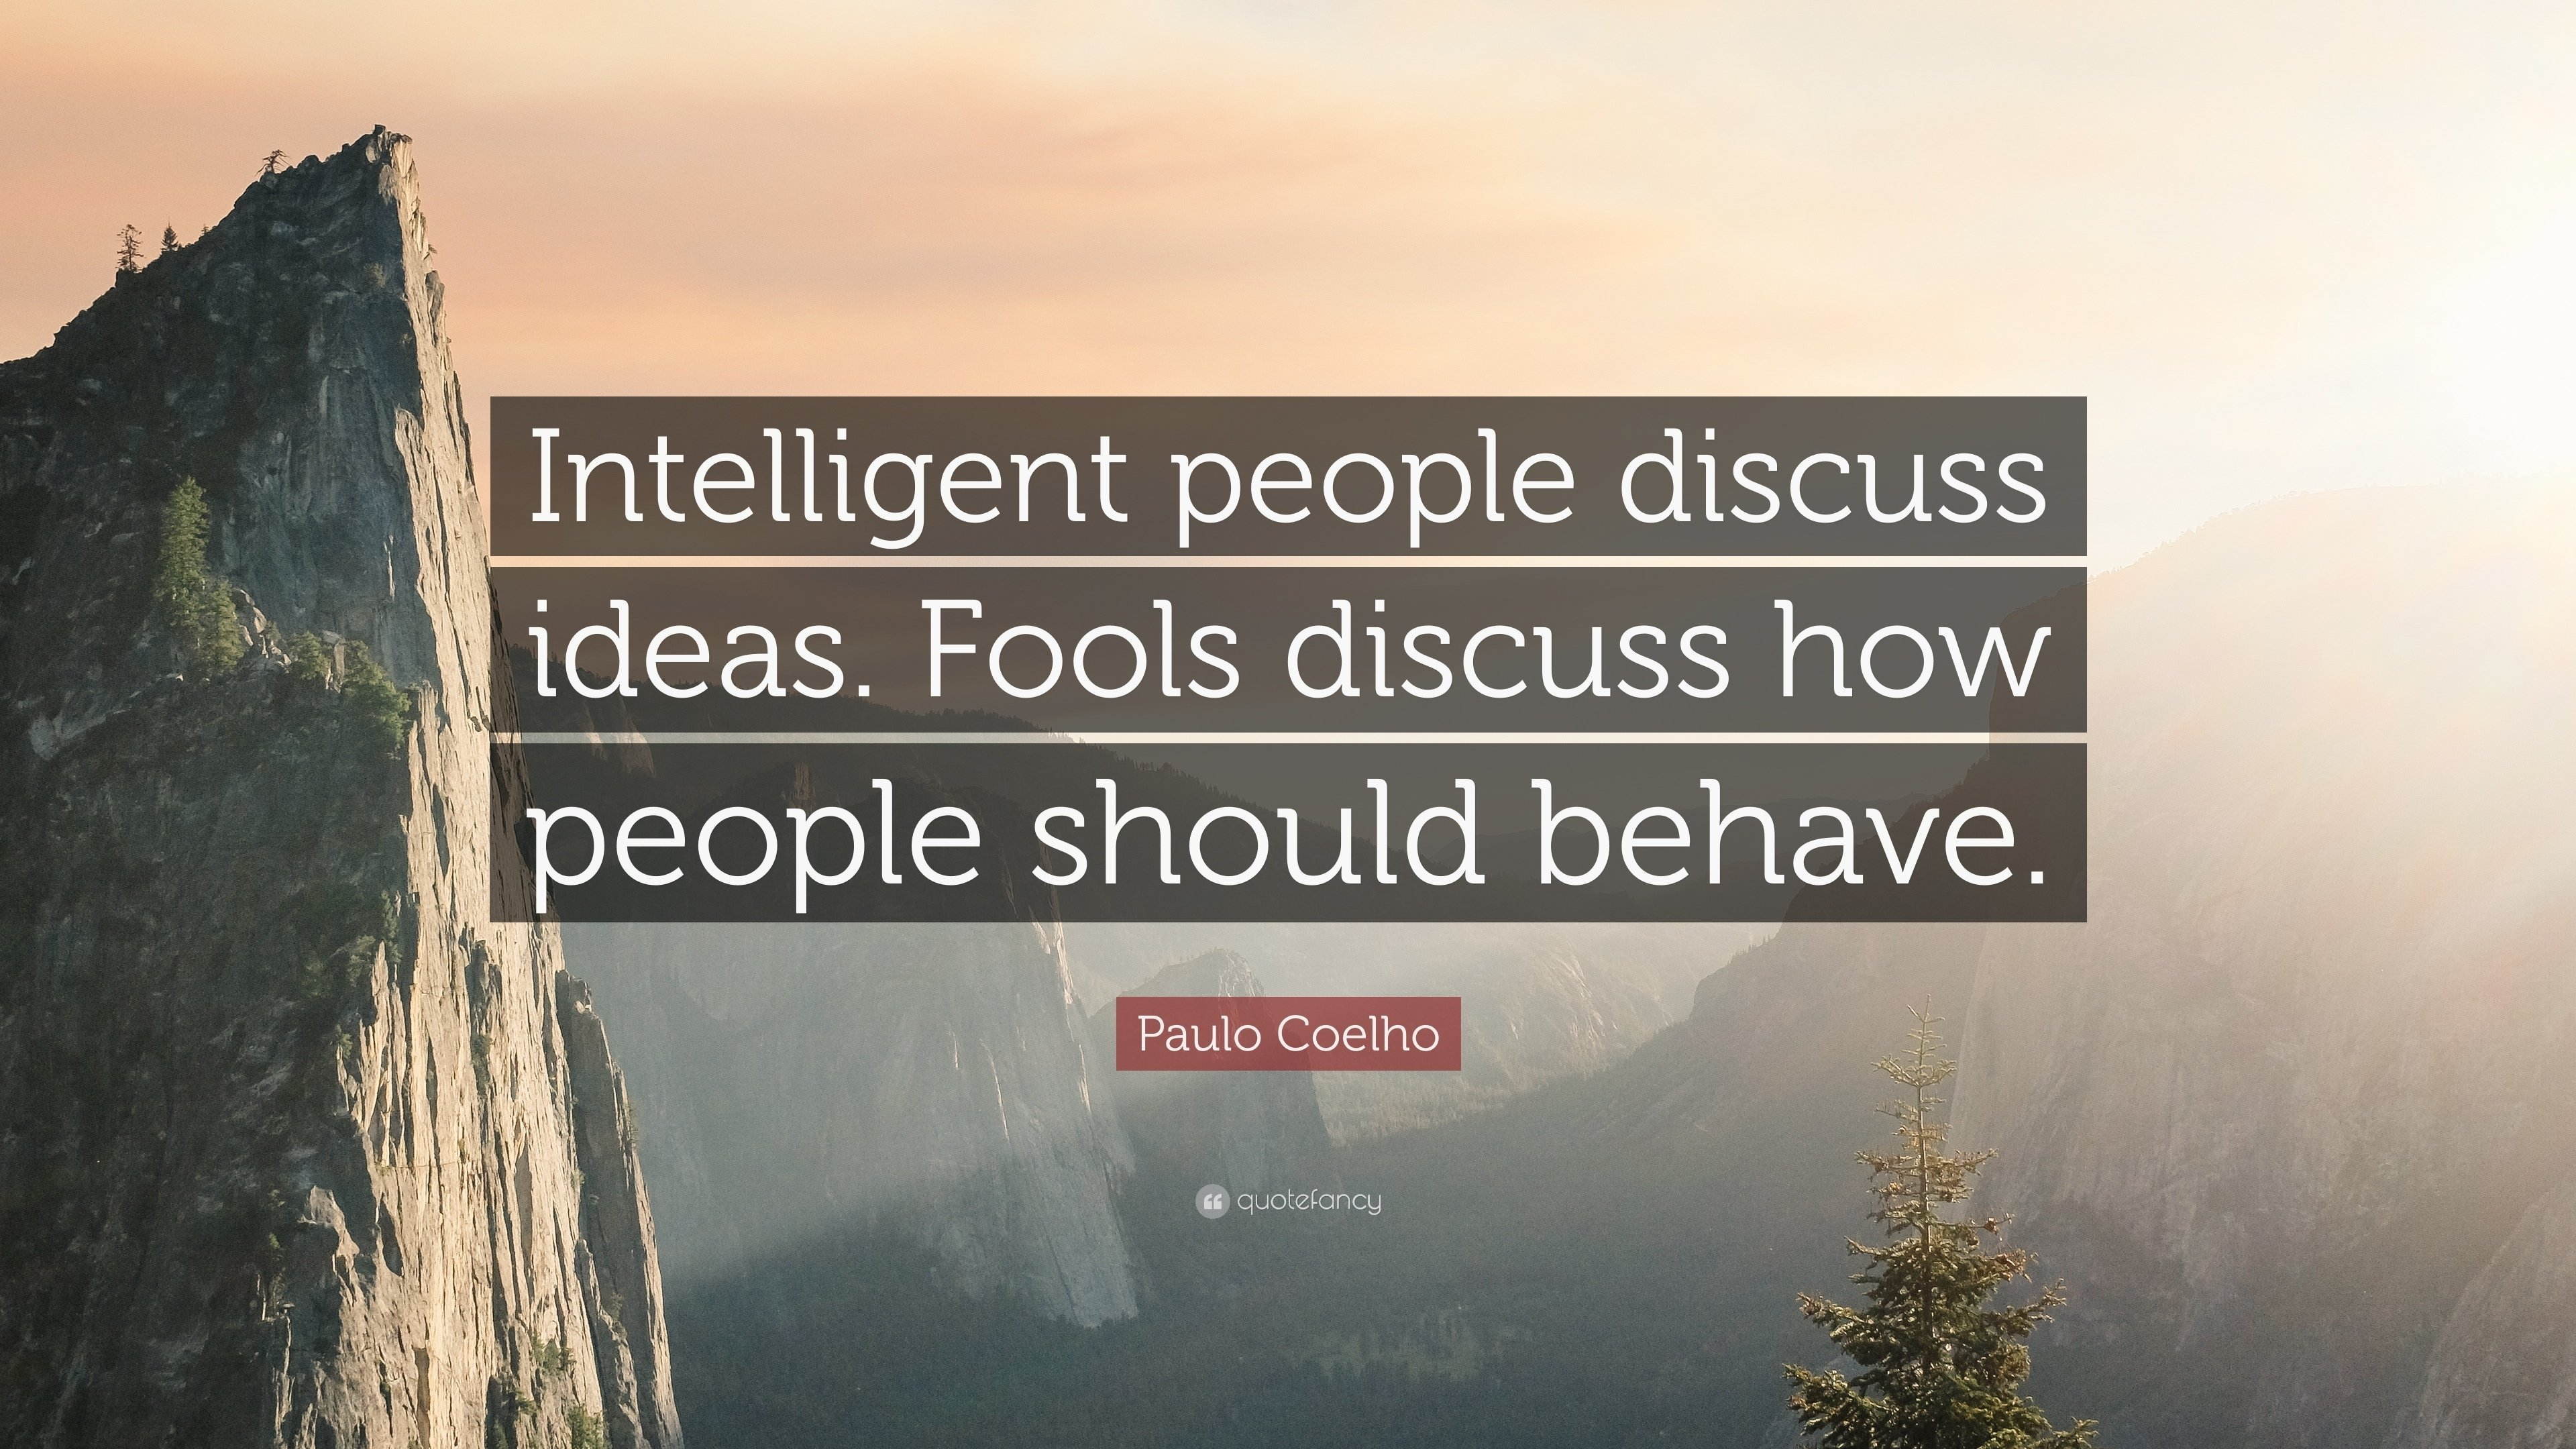 10 Famous Intelligent People Talk About Ideas paulo coelho quote intelligent people discuss ideas fools discuss 1 2020